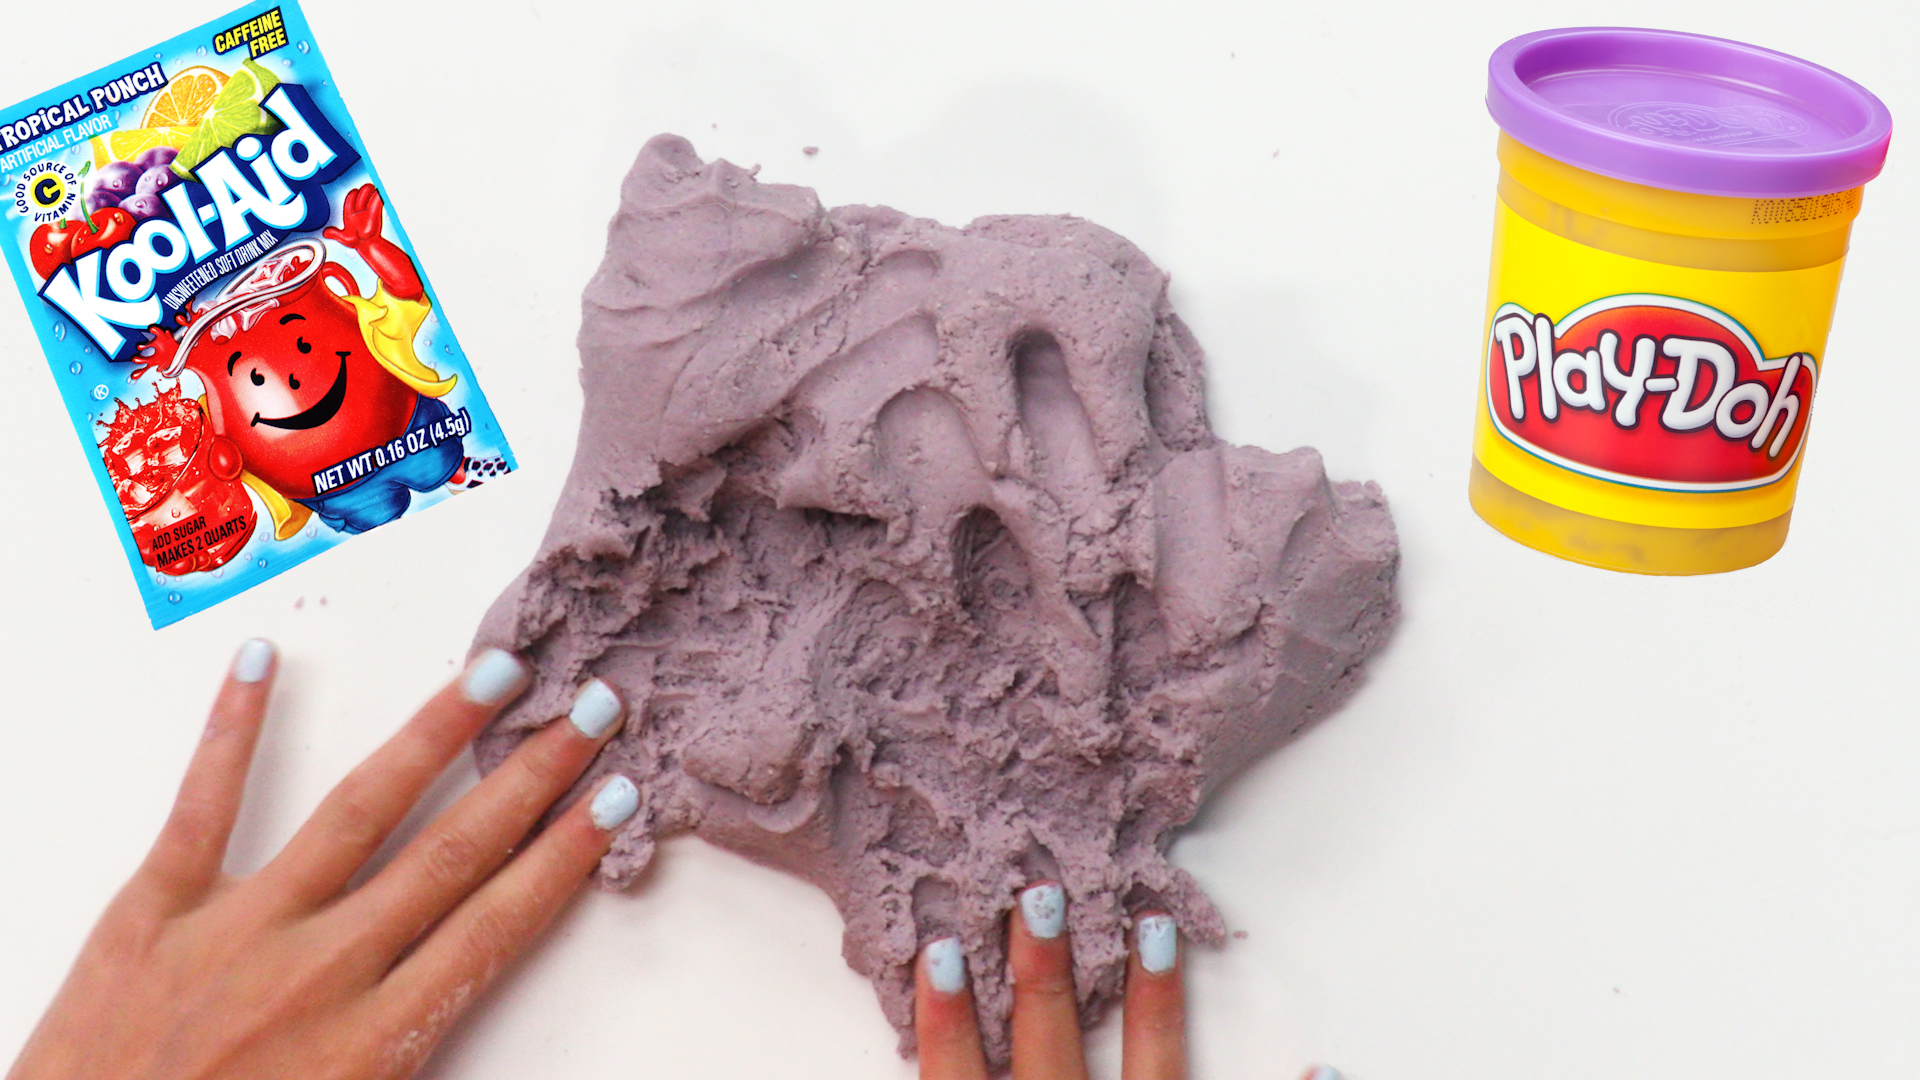 No-Cook Kool-Aid Playdough image